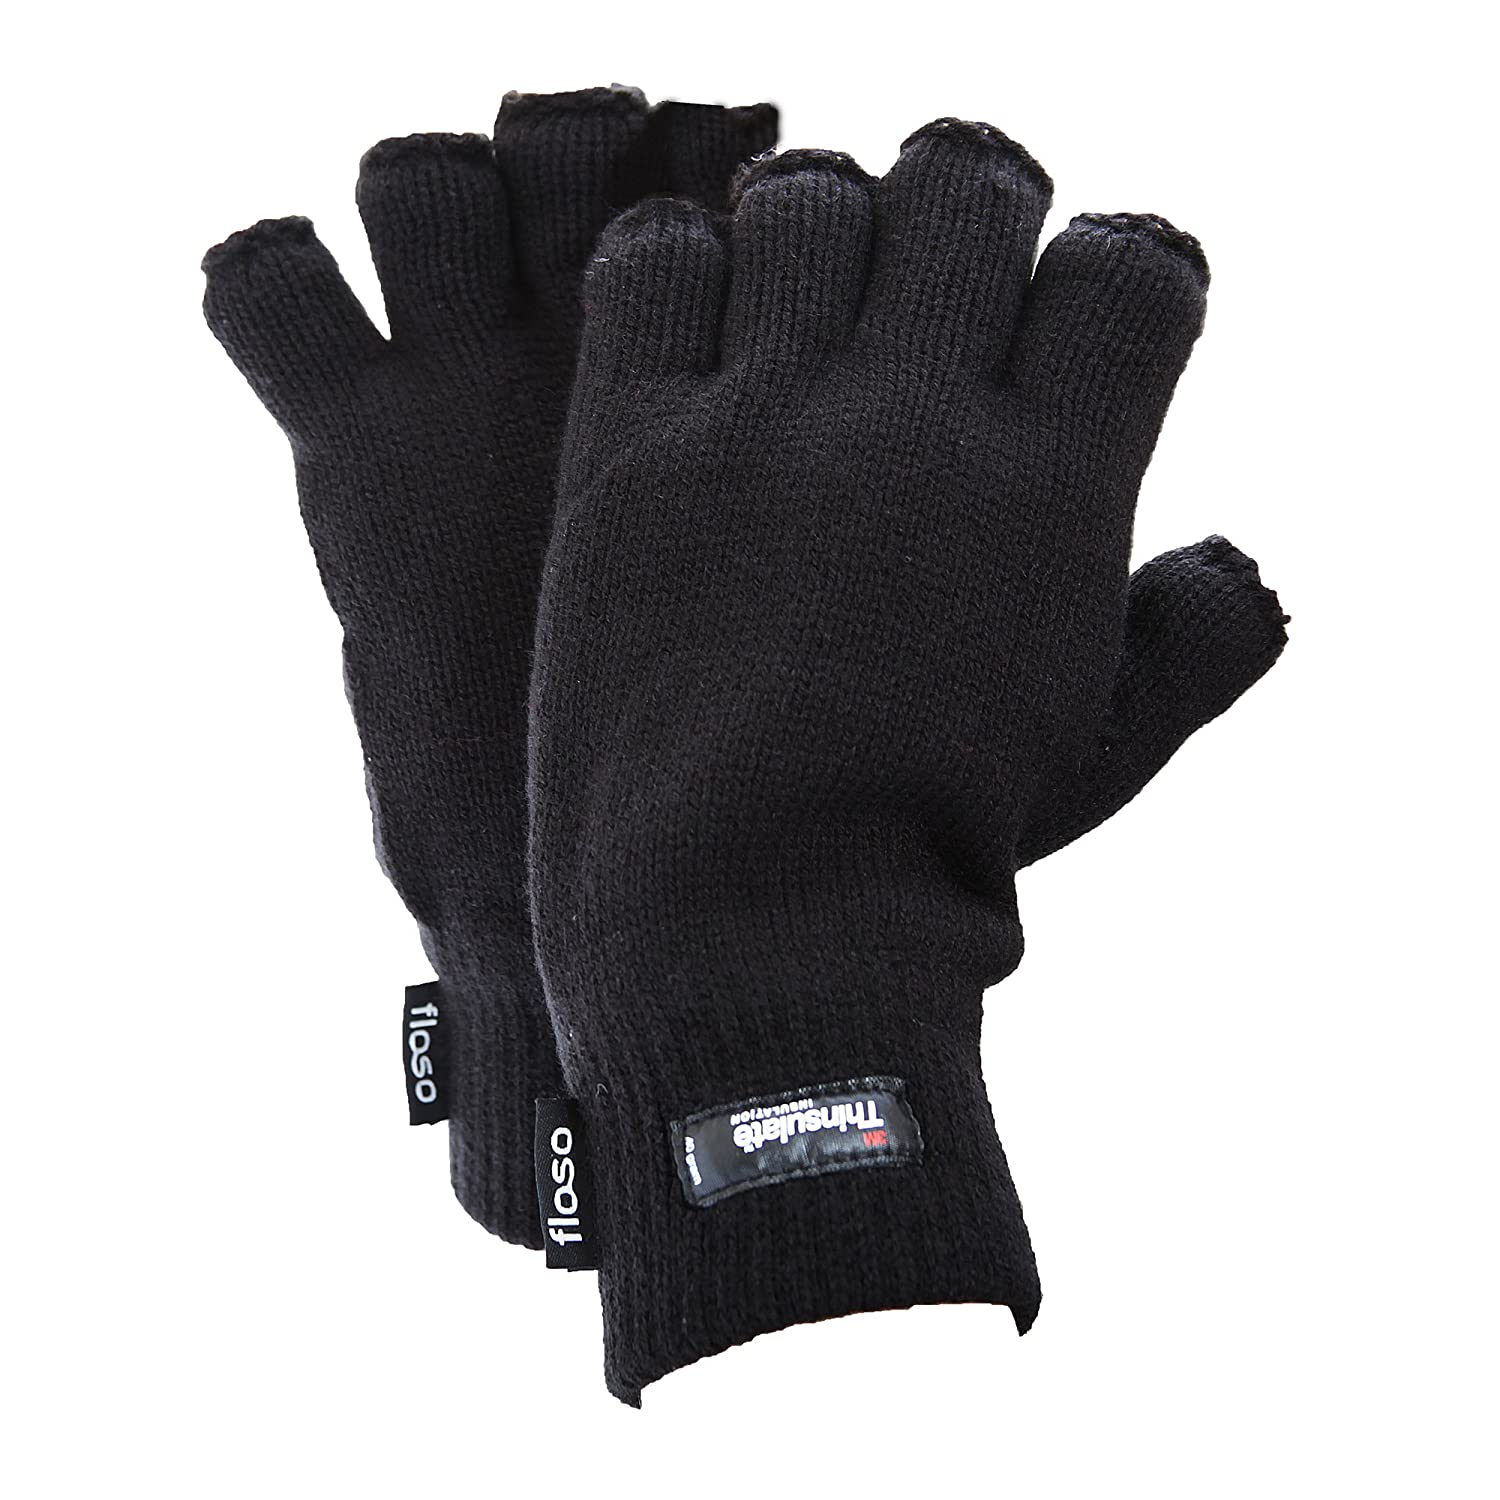 Fingerless gloves thinsulate - Floso Mens Thinsulate Thermal Fingerless Gloves 3m 40g One Size Fits All Black At Amazon Men S Clothing Store Cold Weather Gloves